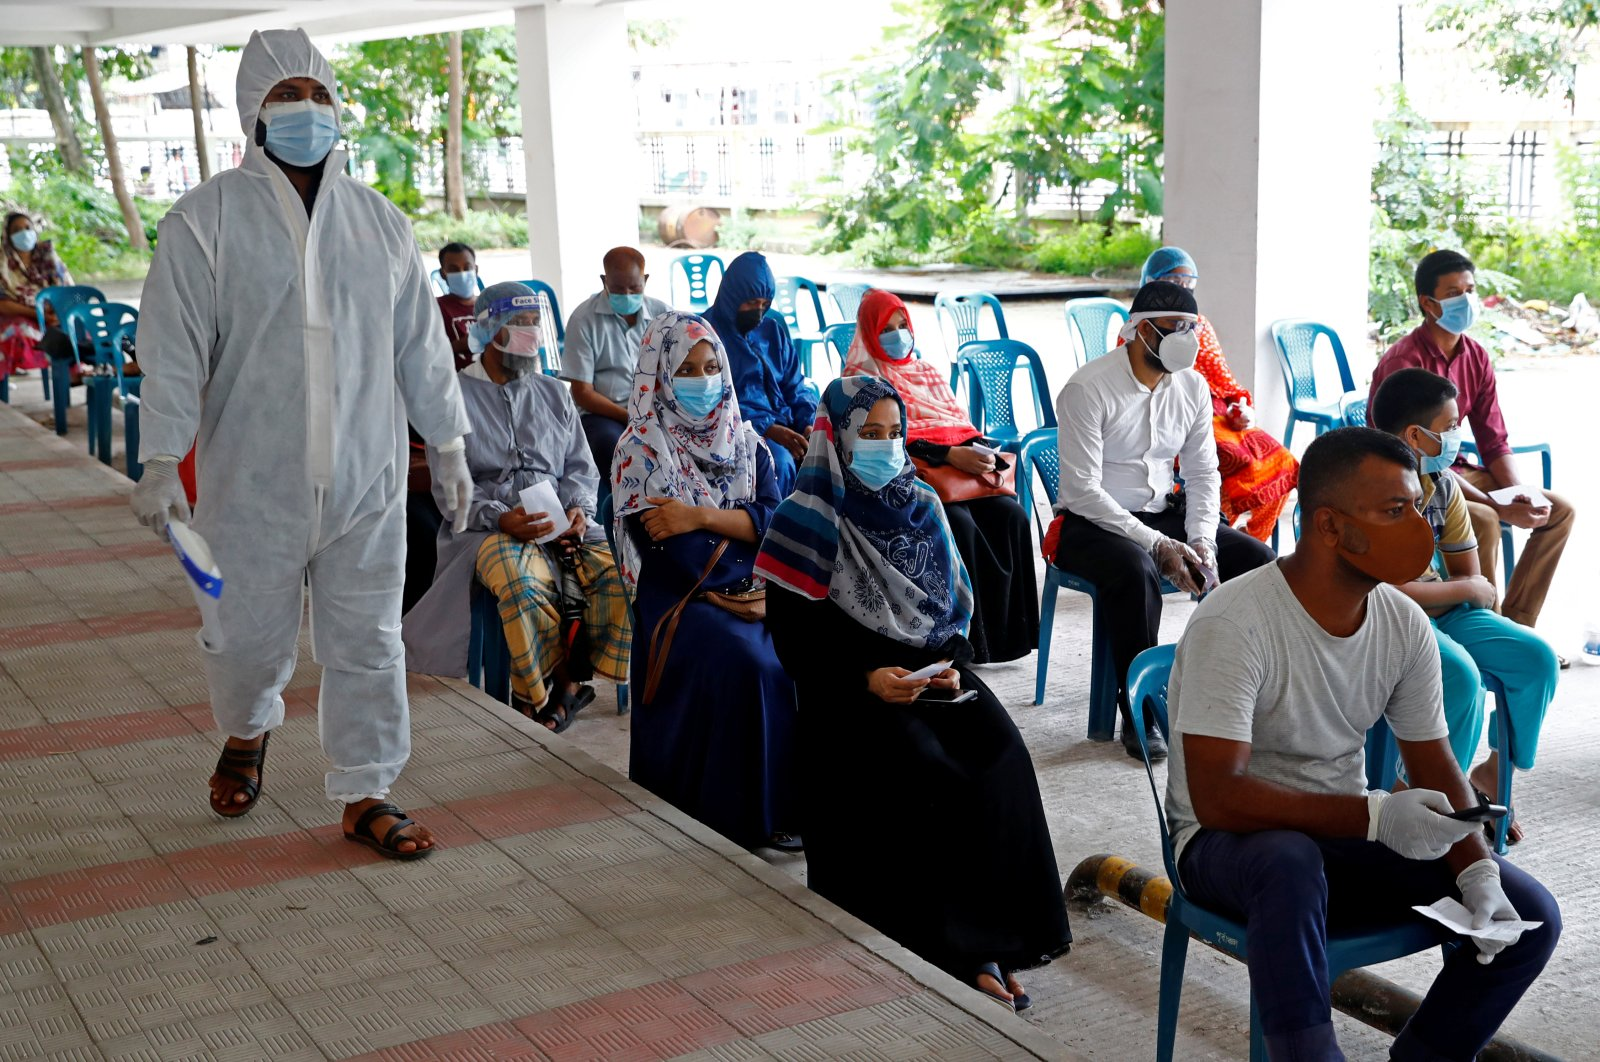 People sit as they come to a coronavirus testing center in the Mugda Medical College and Hospital as the coronavirus outbreak continues in Dhaka, Bangladesh, July 2, 2020. (REUTERS)